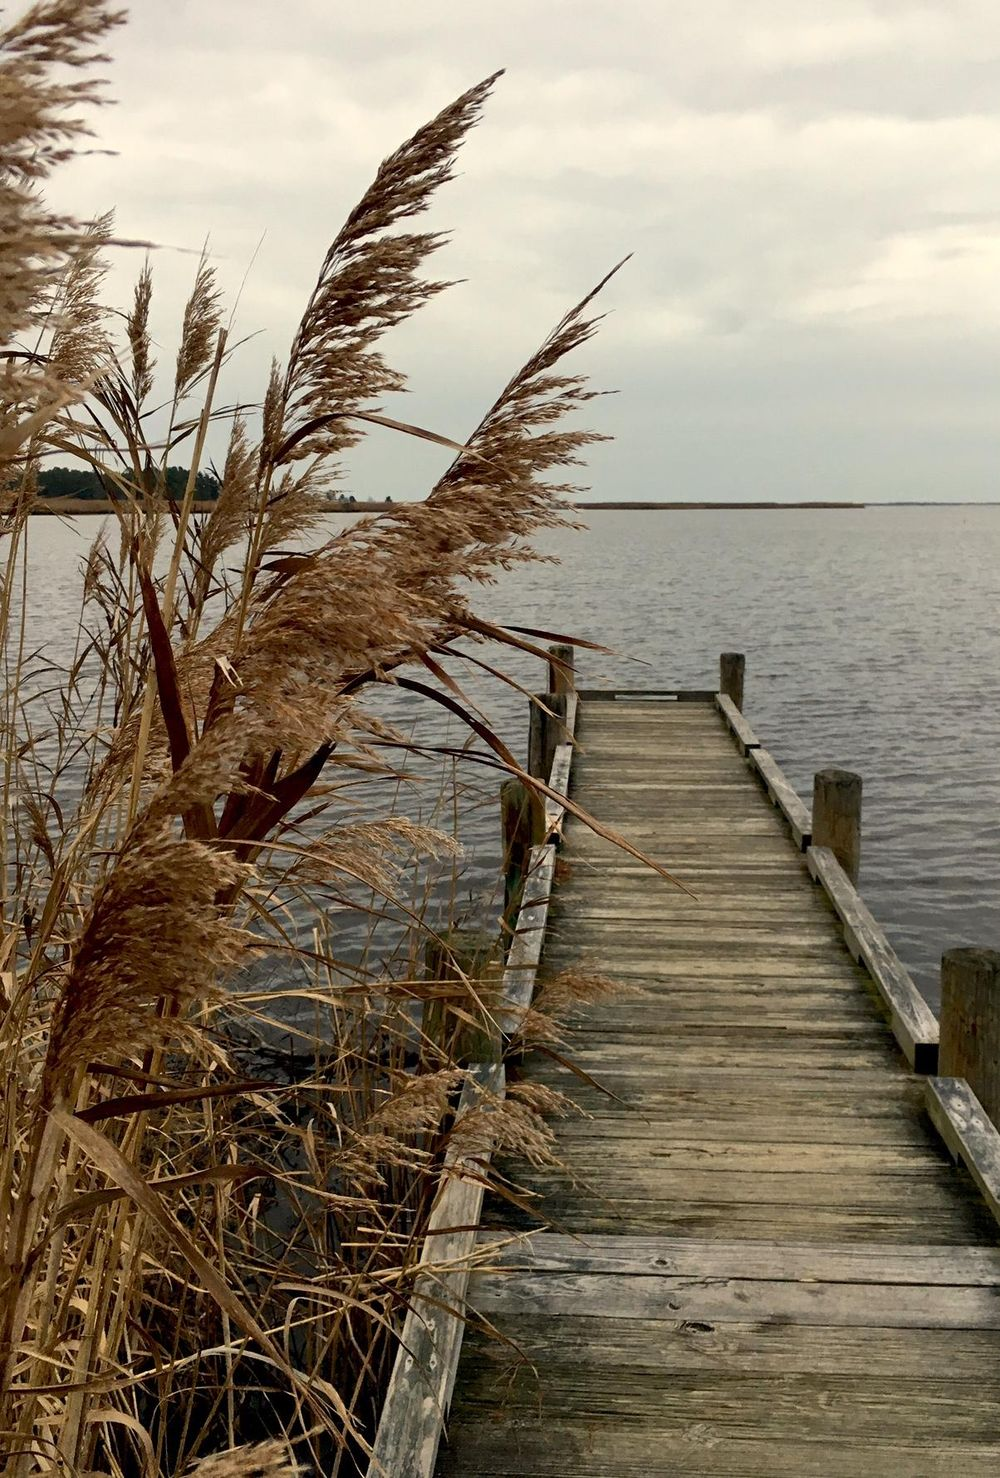 Back Bay, Virginia at Sunrise - image 1 - student project